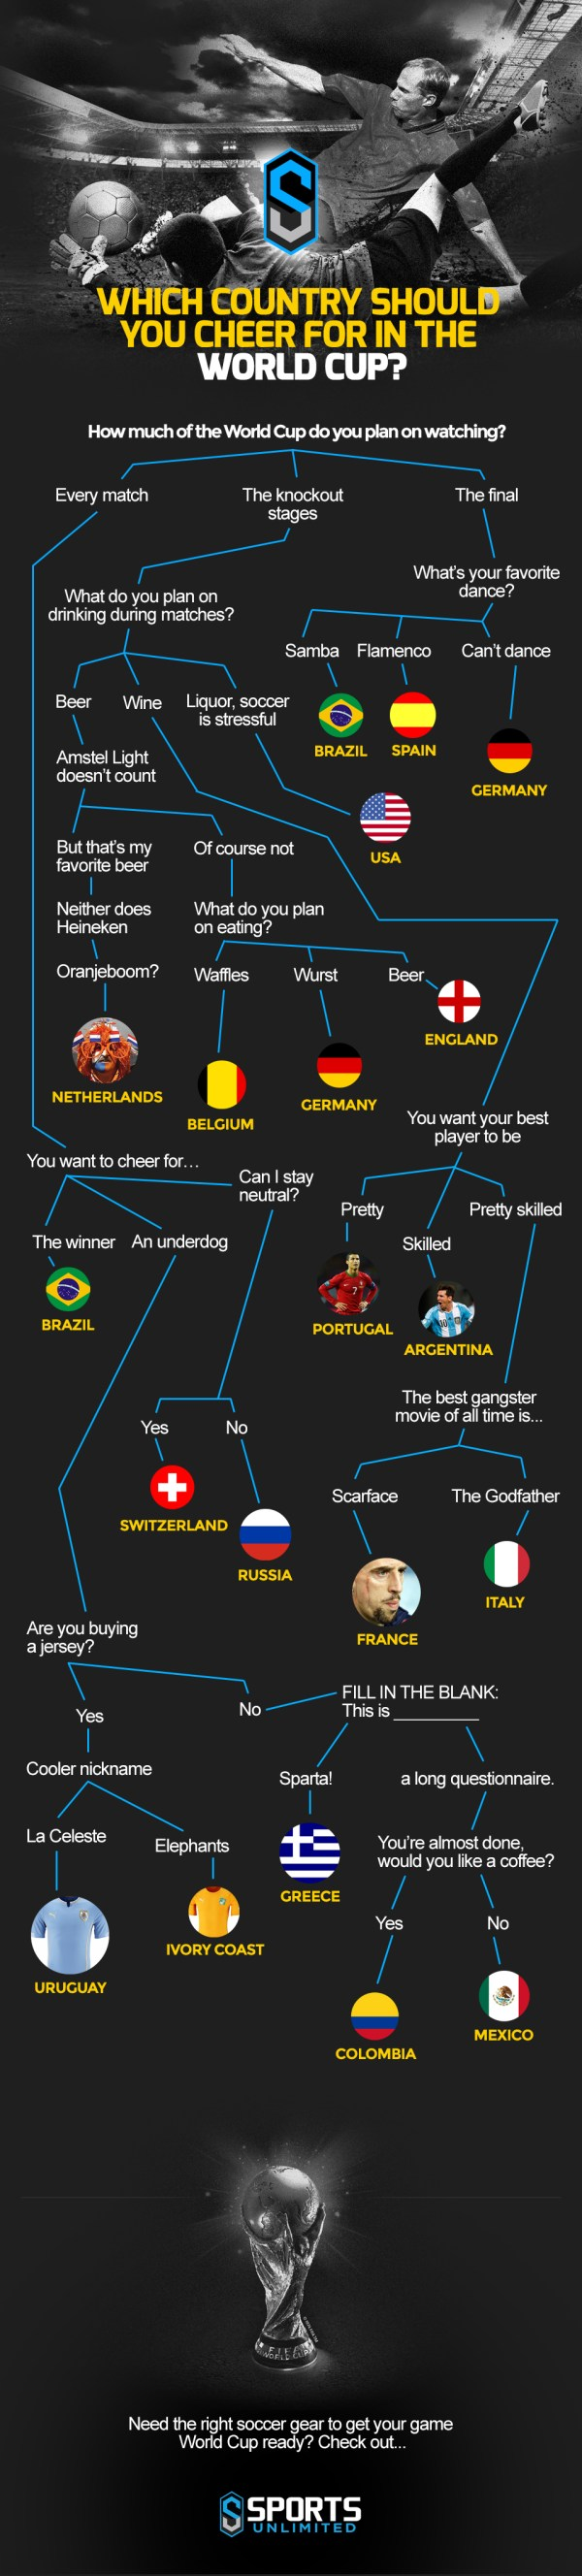 World Cup 2014 Flow Chart